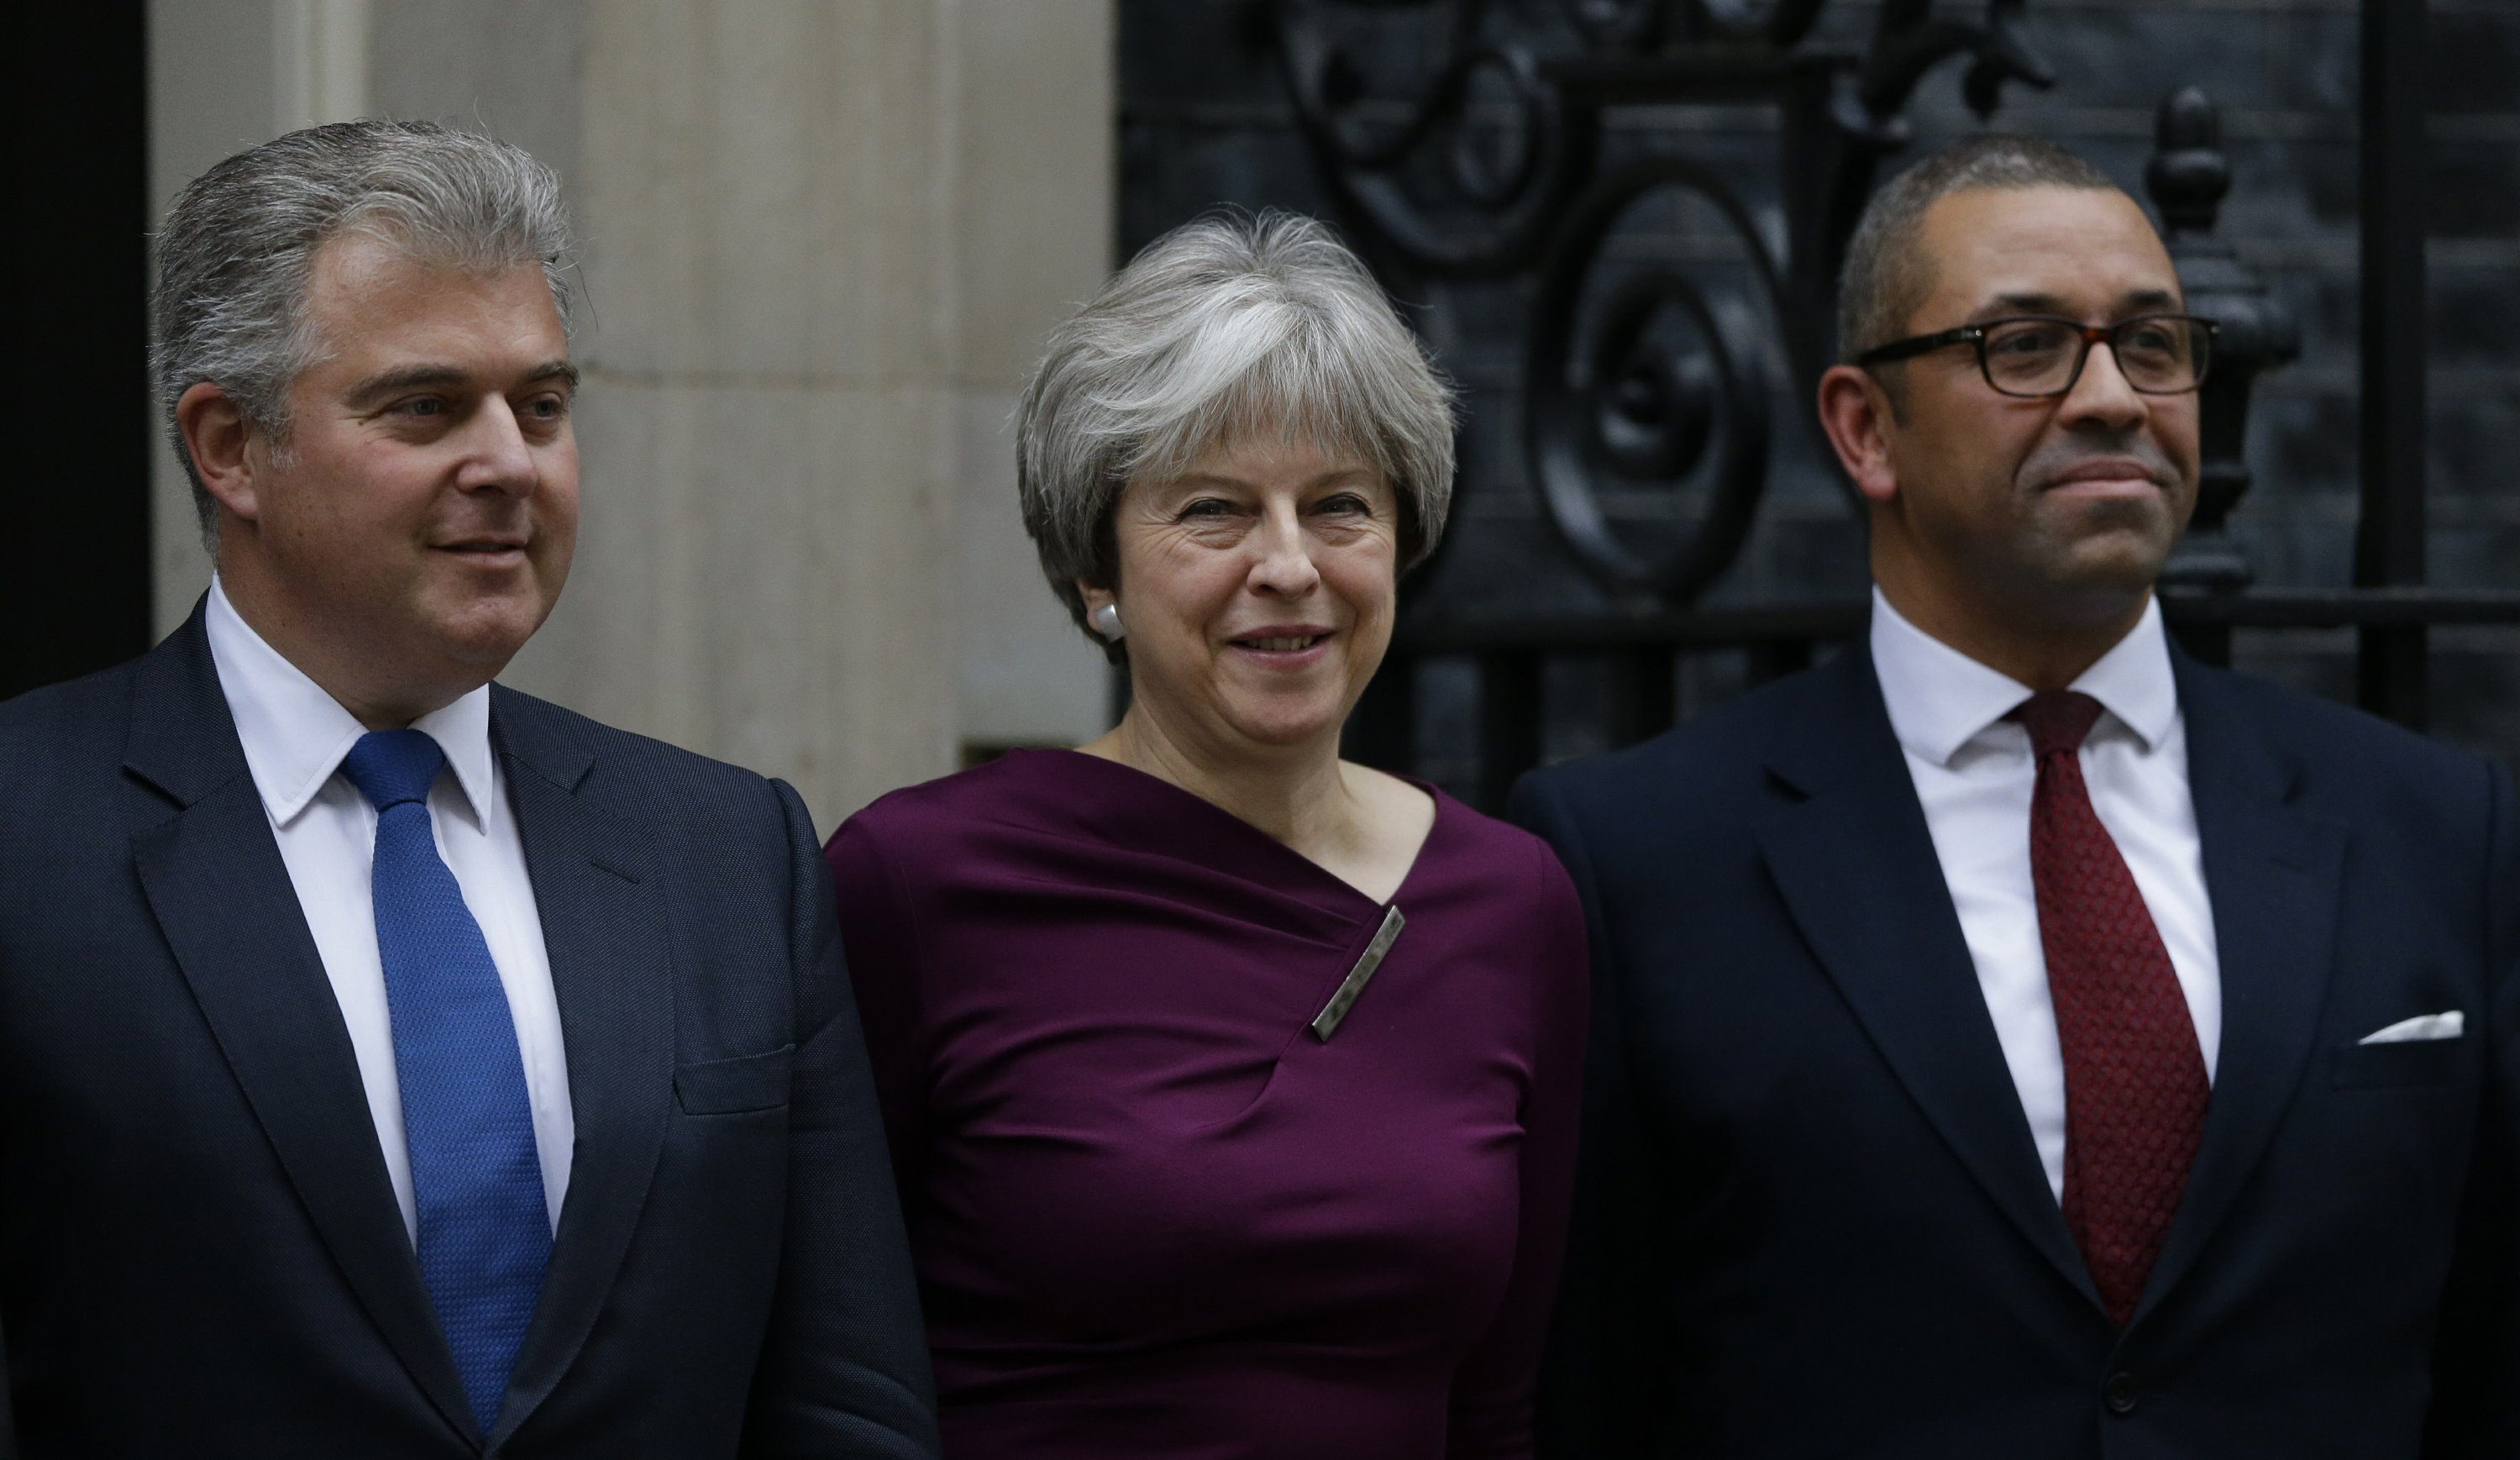 UK's May shuffles Cabinet, but Brexit divisions limit scope